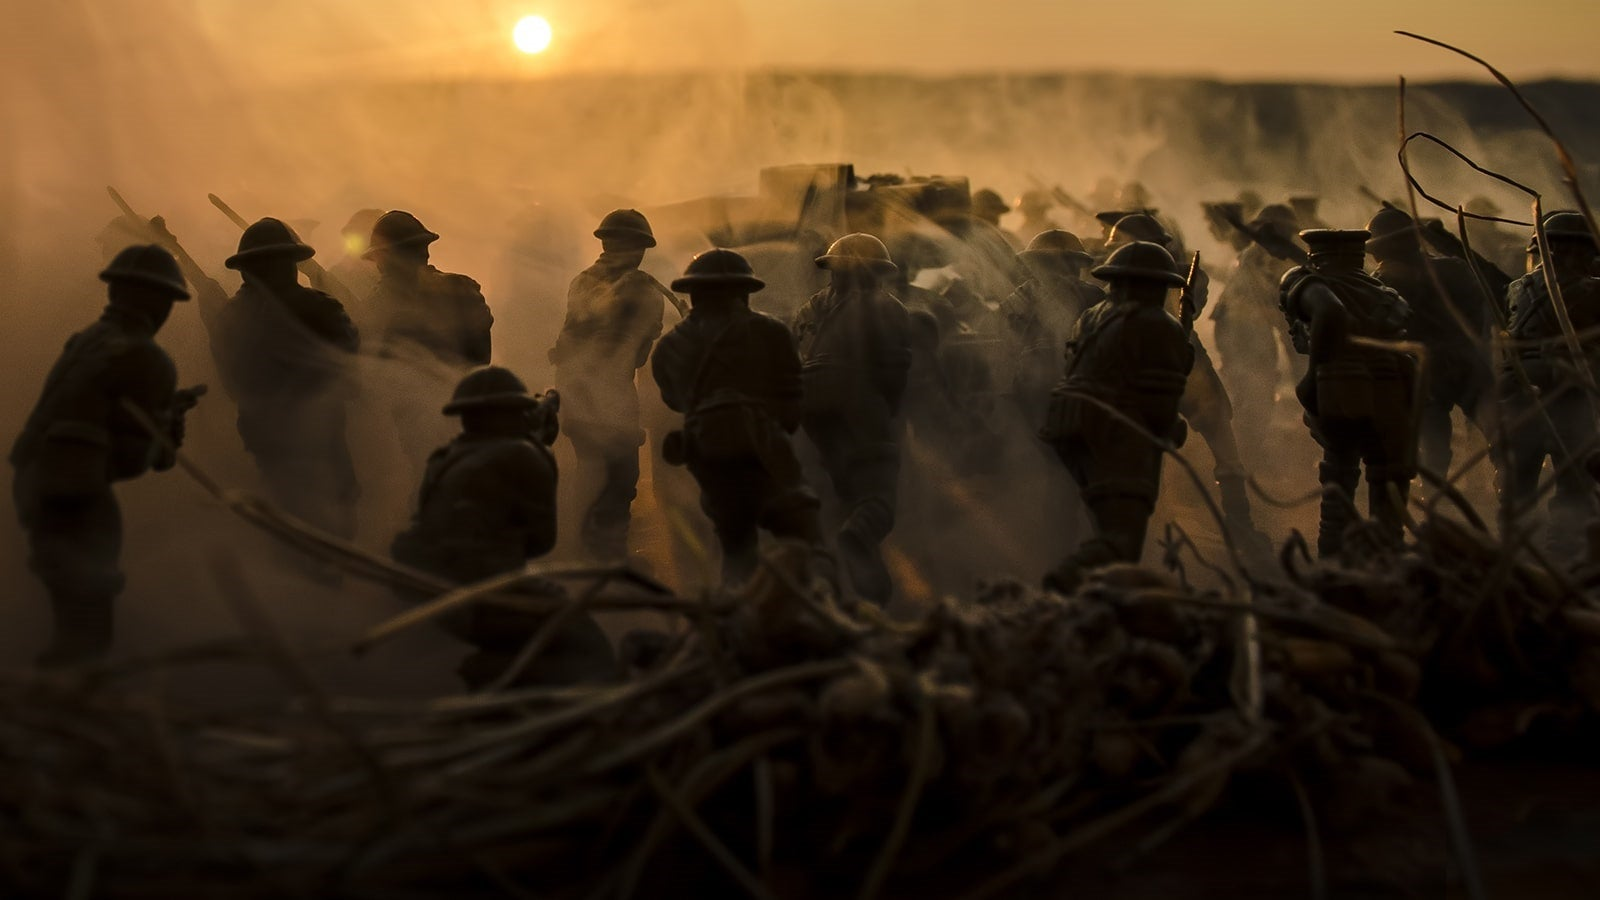 Soldiers on the front line at sun set